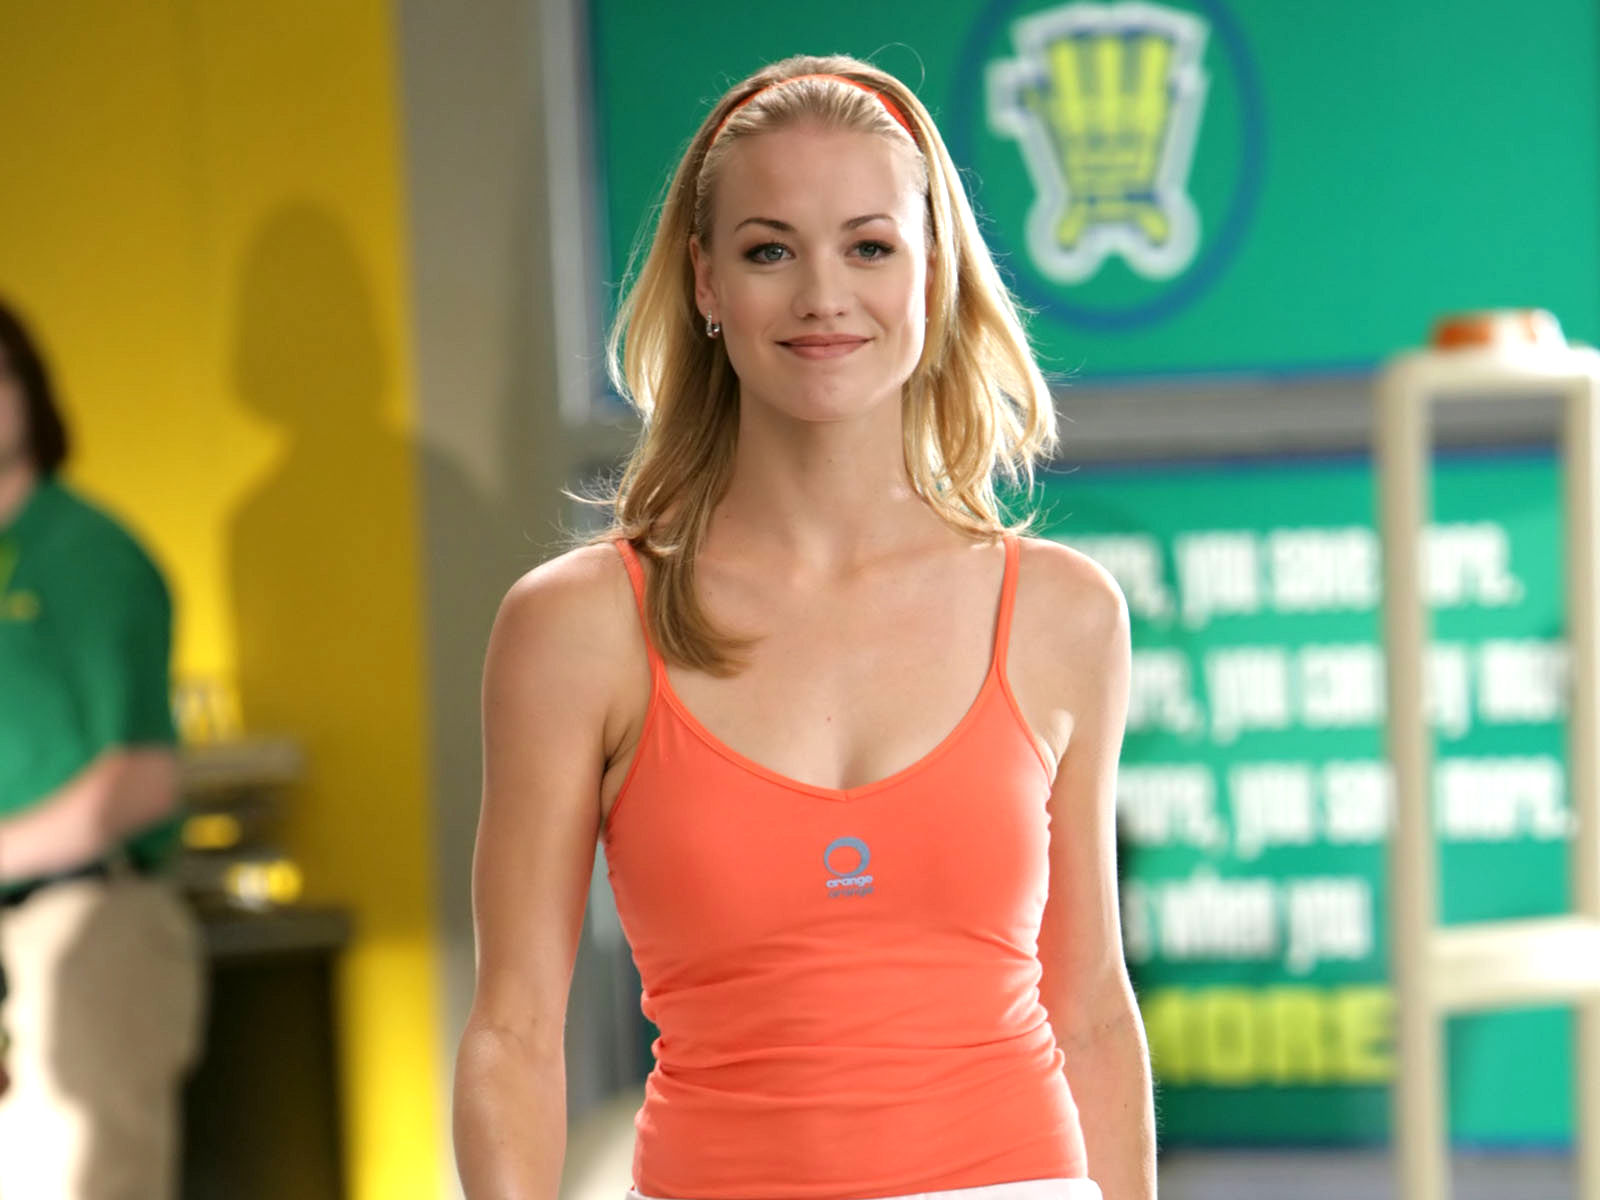 Yvonne Strahovski HD Wallpapers High Definition iPhone HD 1600x1200